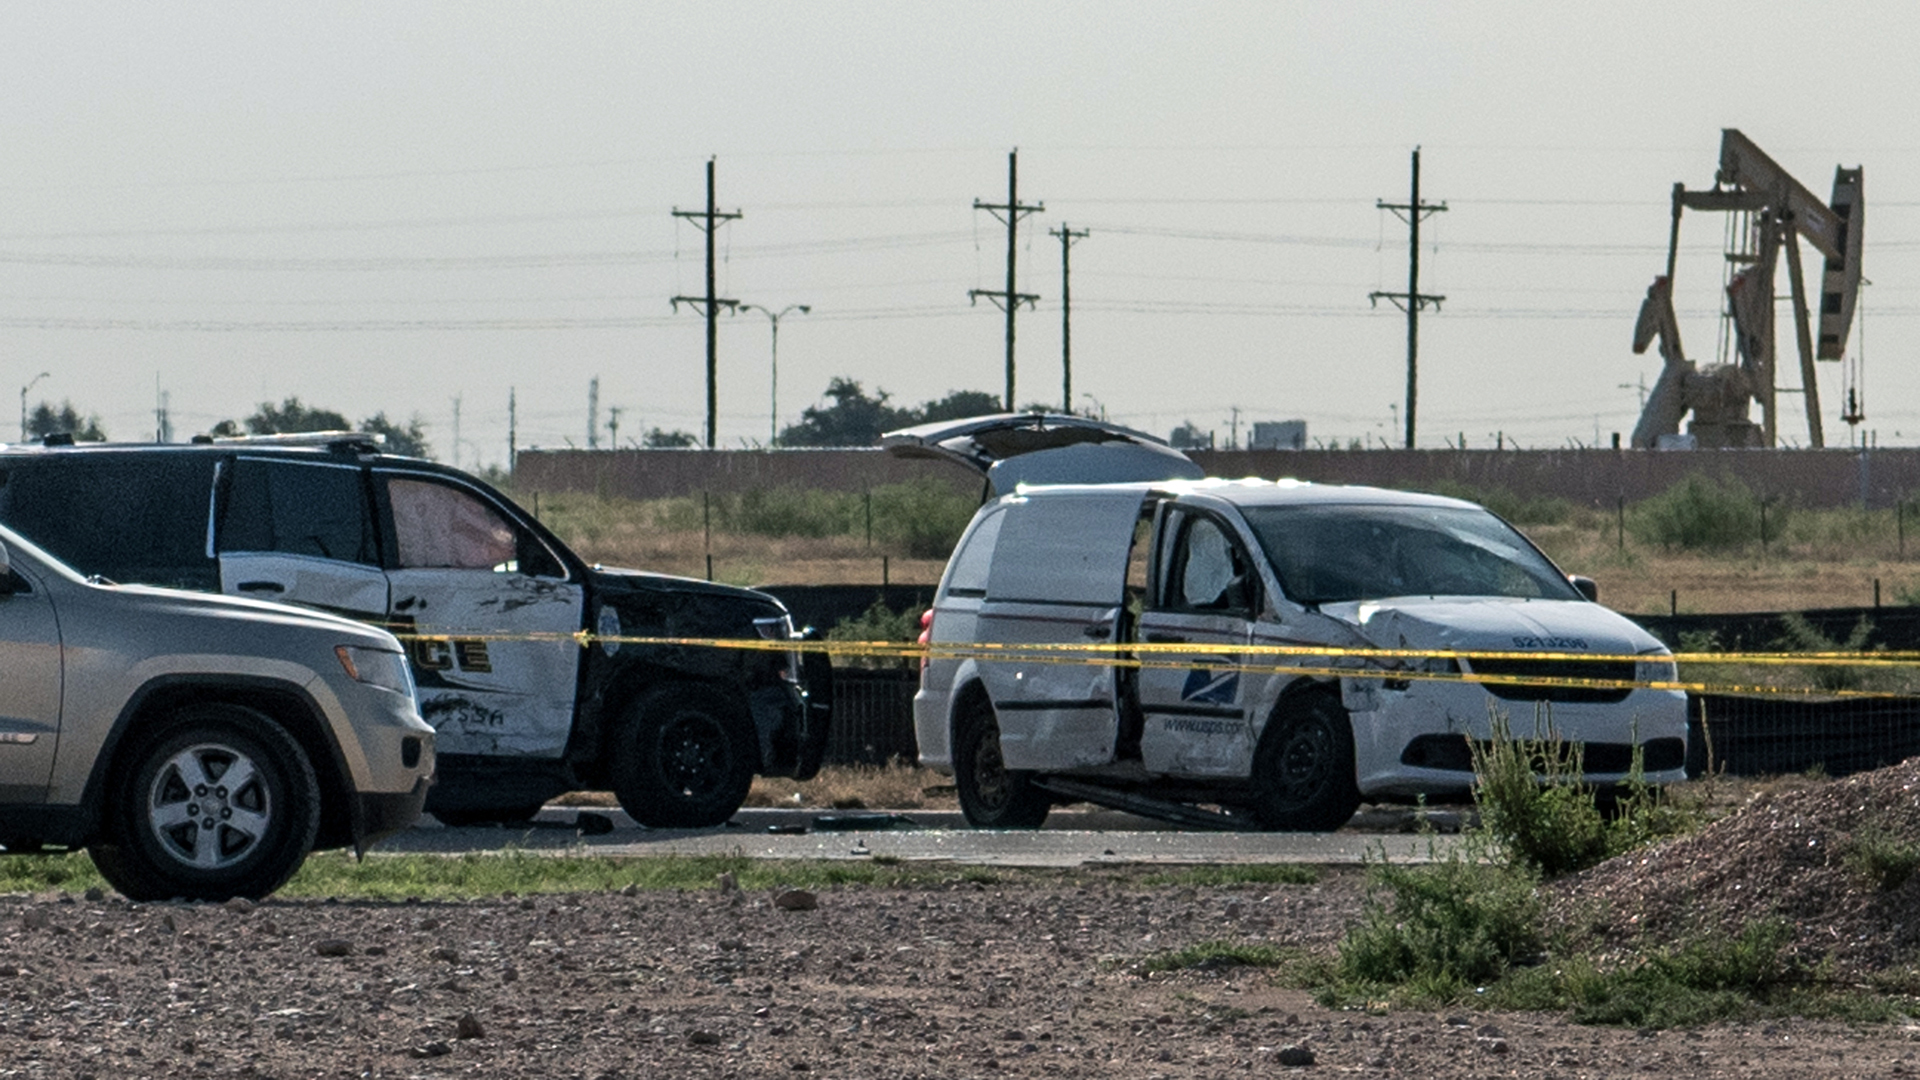 A damaged police vehicle and U.S. Postal Service van blocked off with tape nearby to where a gunman was shot and killed at Cinergy Odessa movie theater following a deadly shooting spree on September 1, 2019 in Odessa, Texas. (Credit: Cengiz Yar/Getty Images)